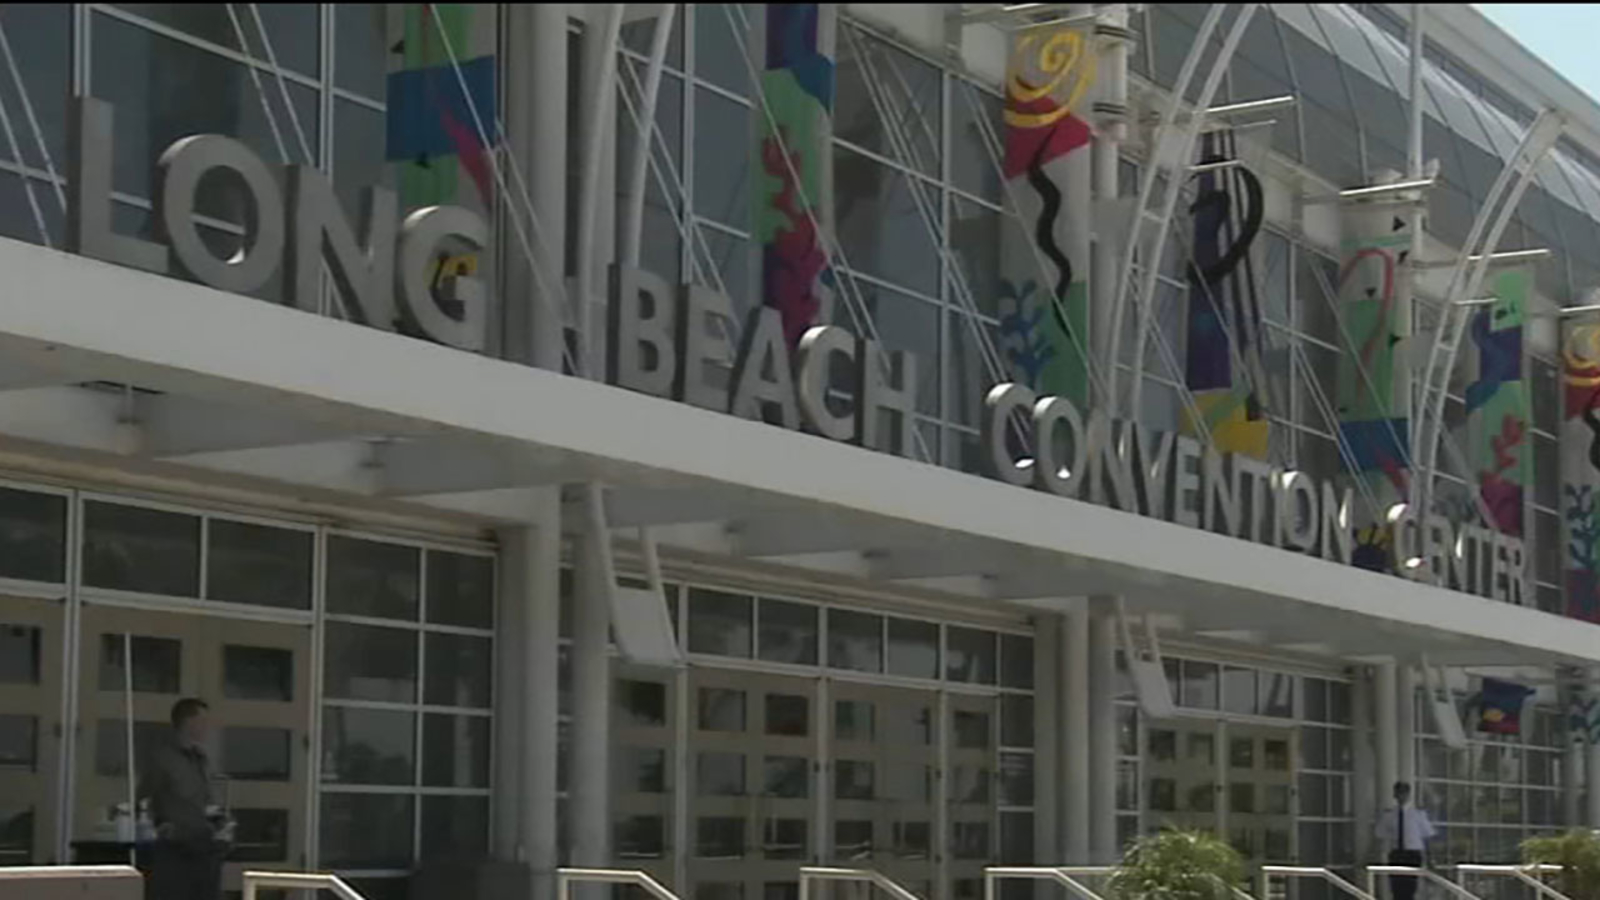 Long Beach hosts California Democratic convention featuring presidential candidates